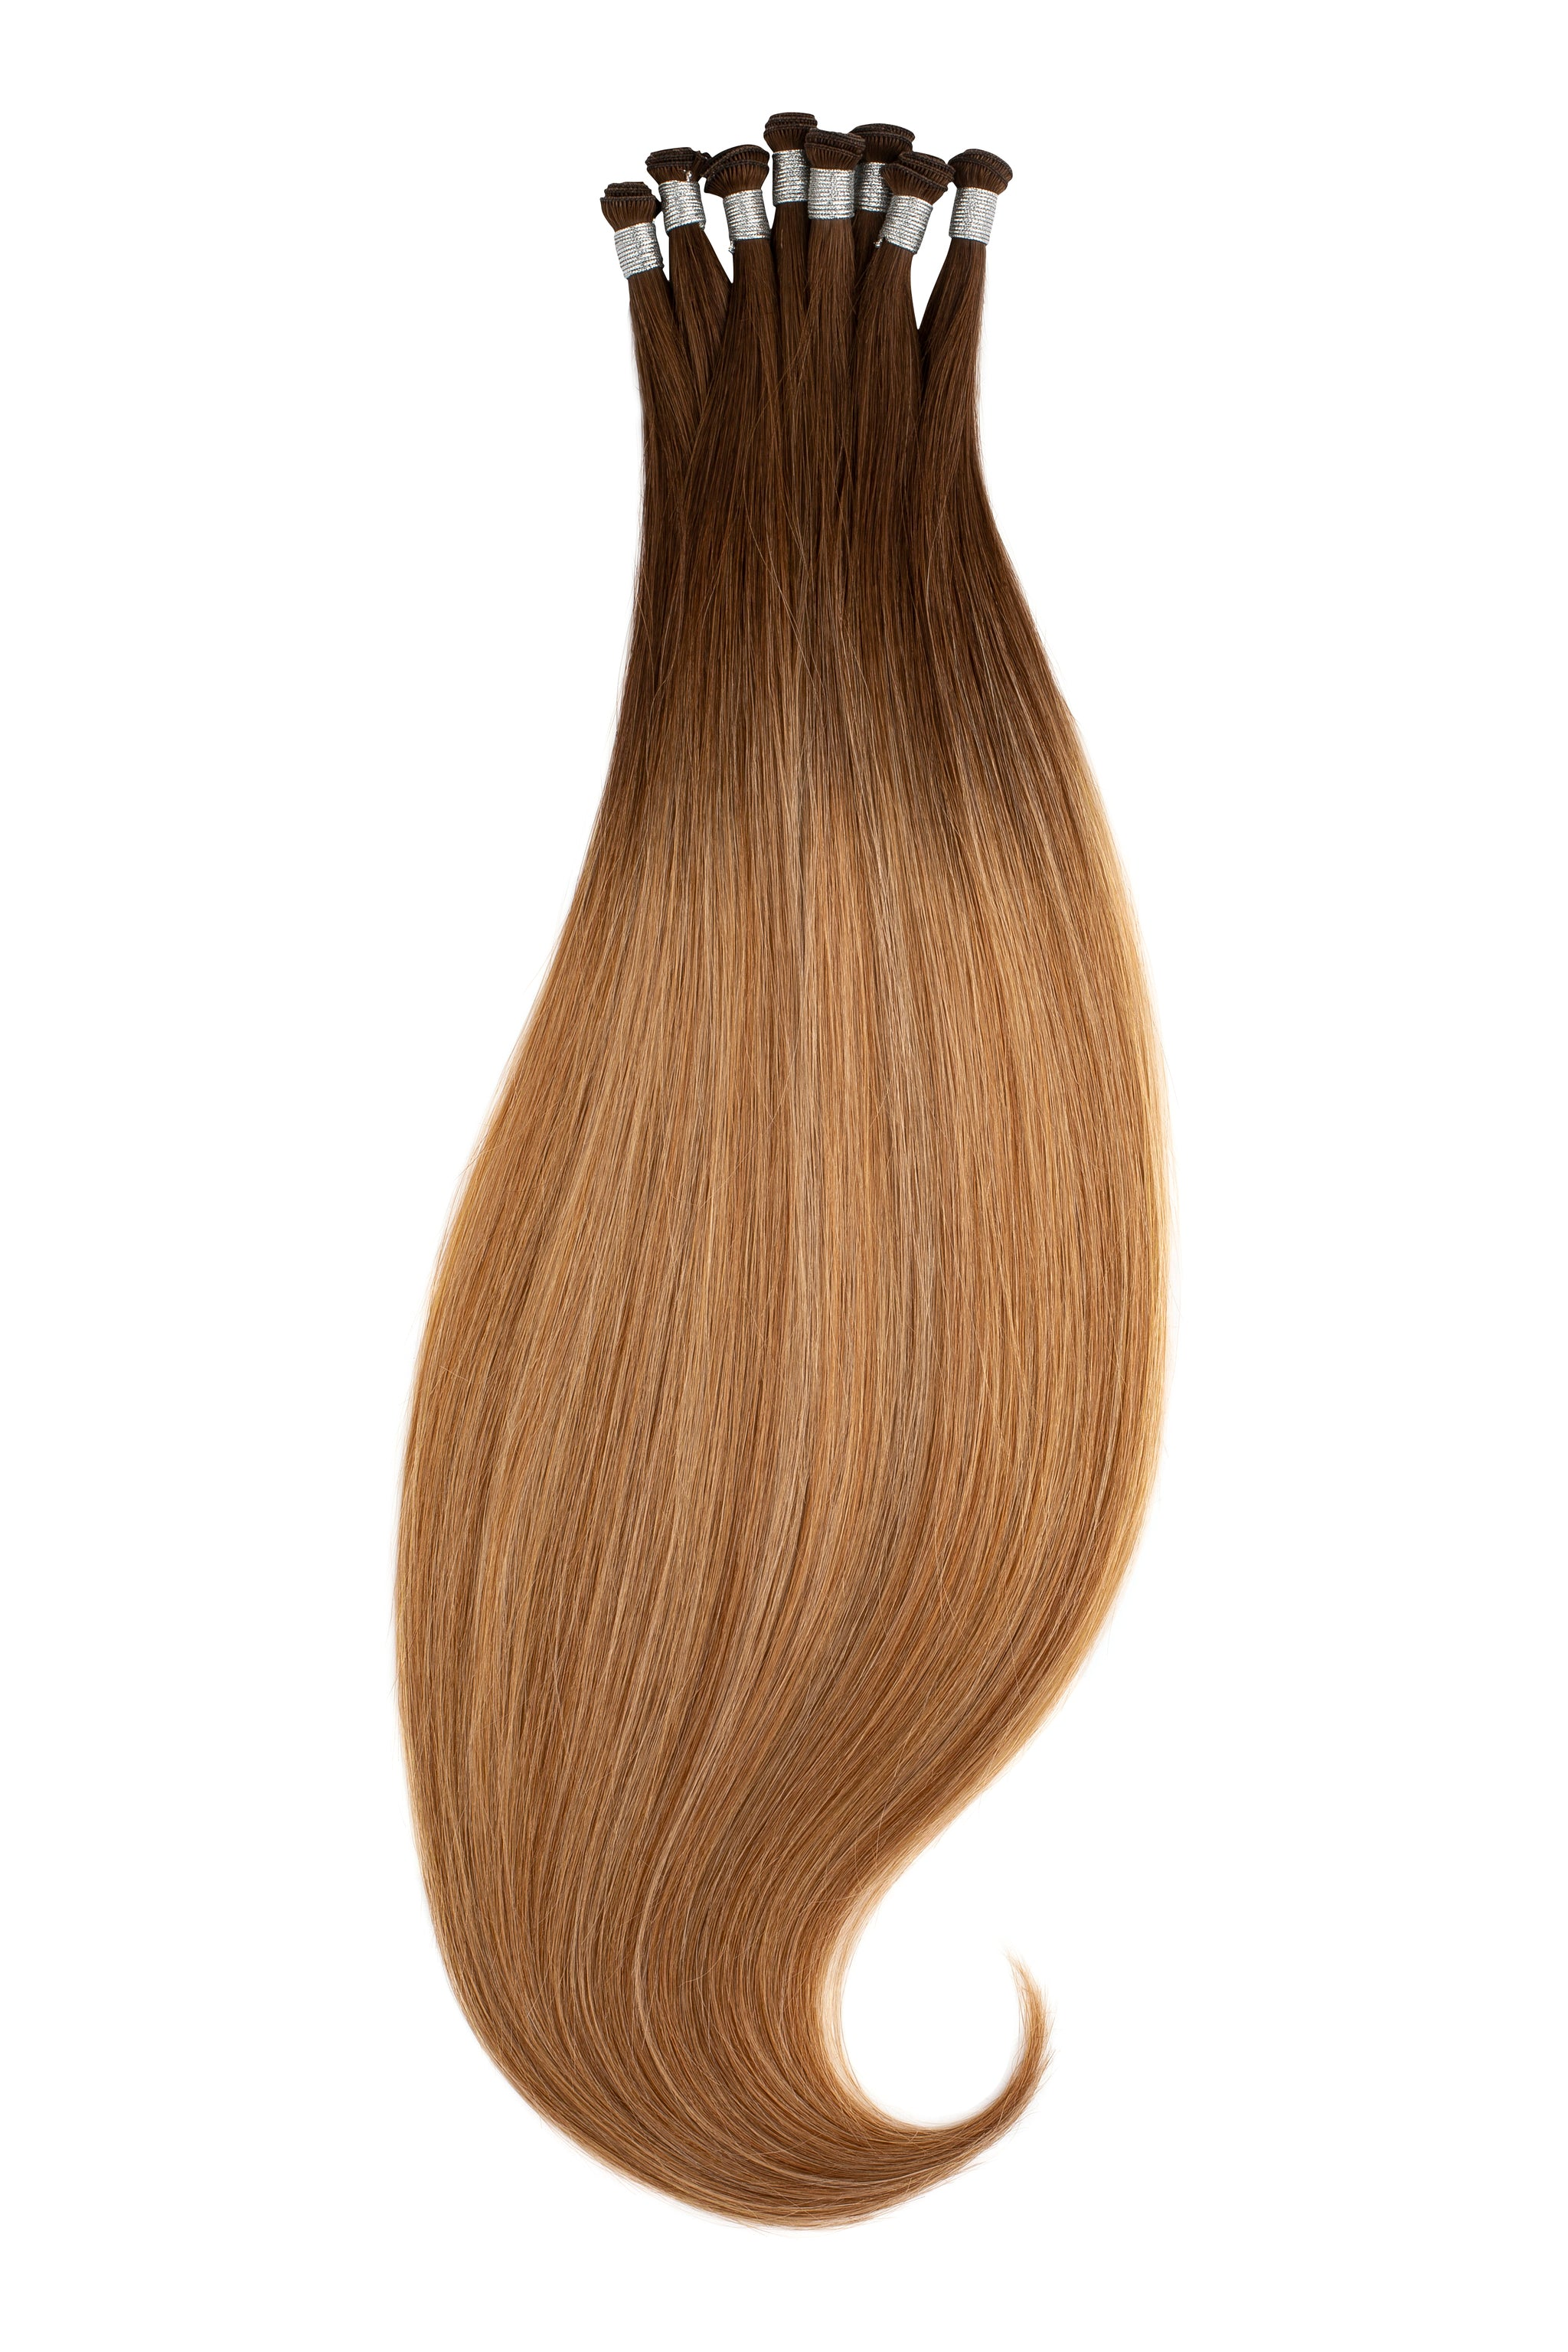 Bahamian Balayage Hand-Tied Wefts braidless sew in